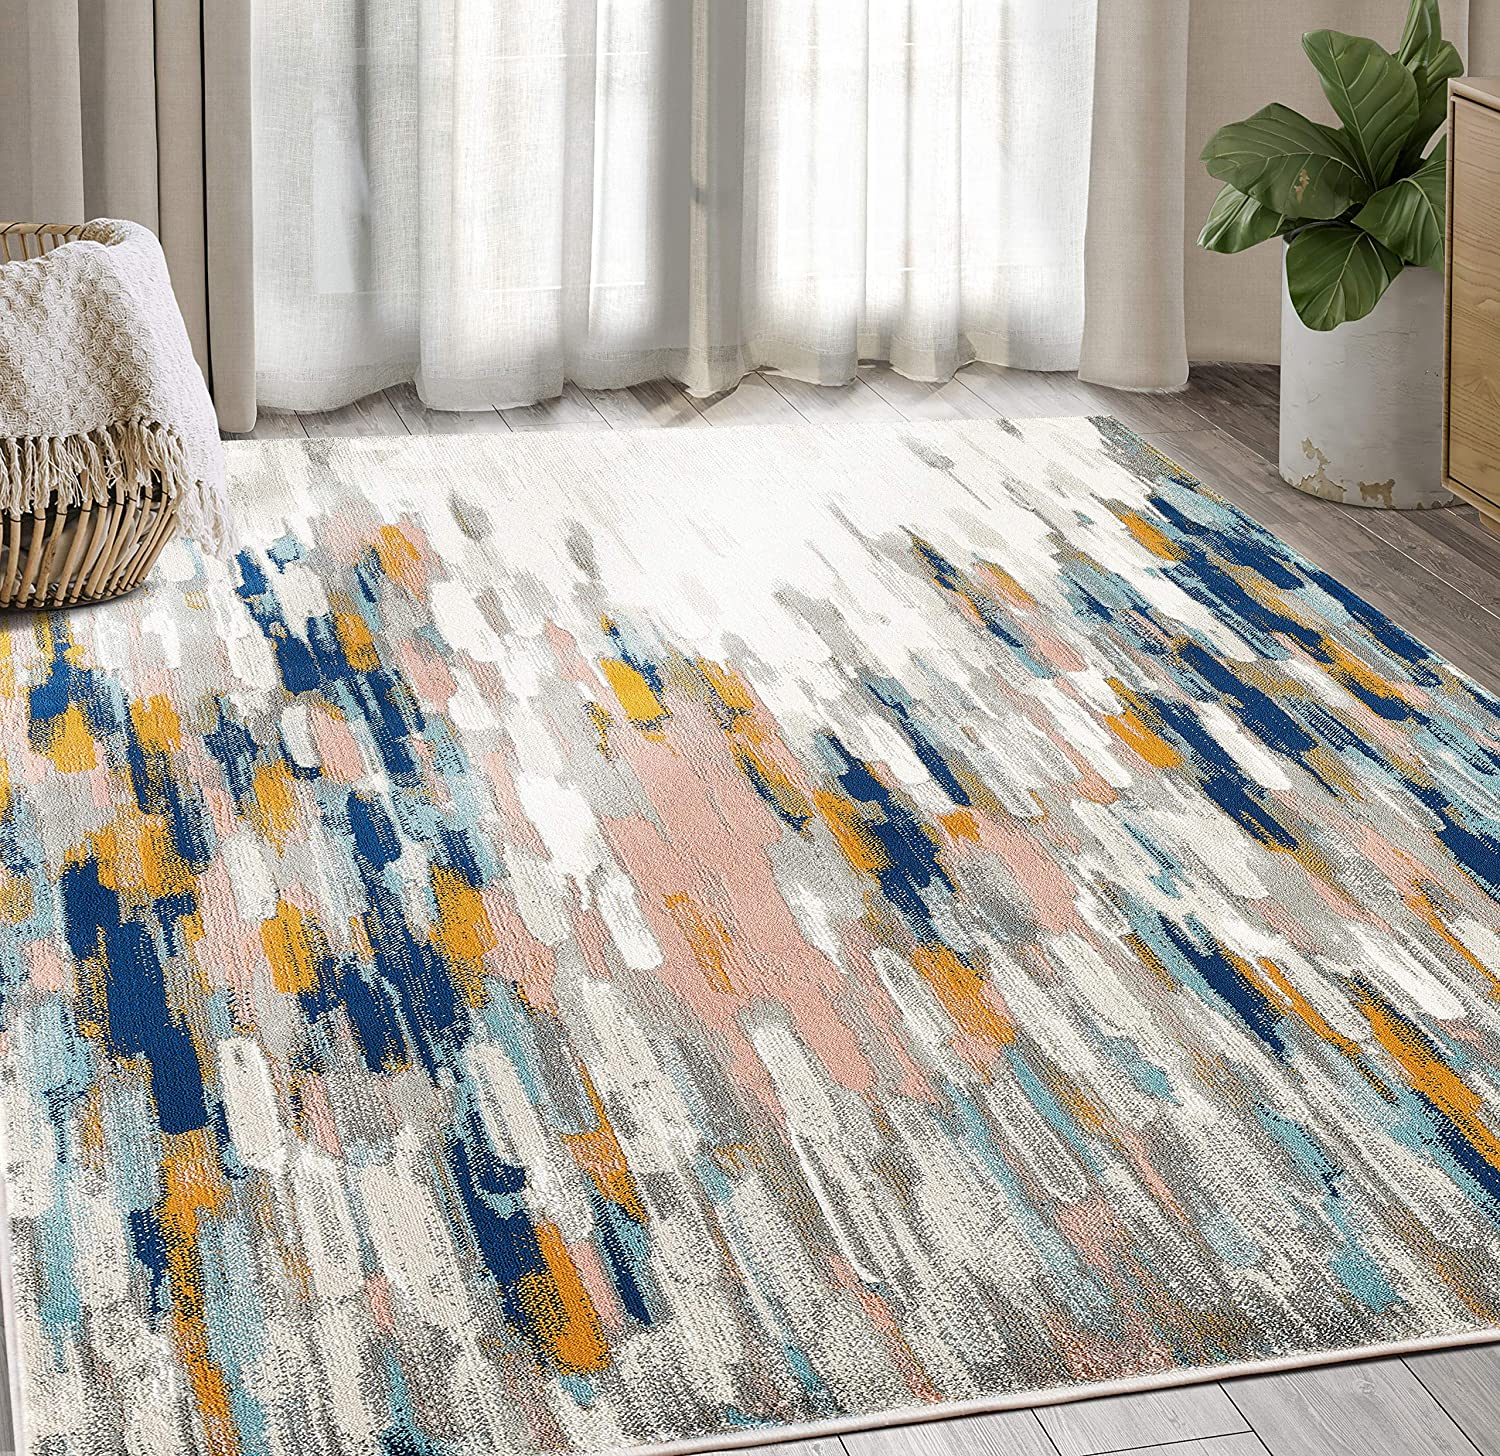 Abani Rugs Orange & Blue Contemporary Abstract Area Rug Contemporary Style, Porto Collection | Turkish Made Superior Comfort & Construction | Stain Shedding Resistant, 6' x 9' Rectangle